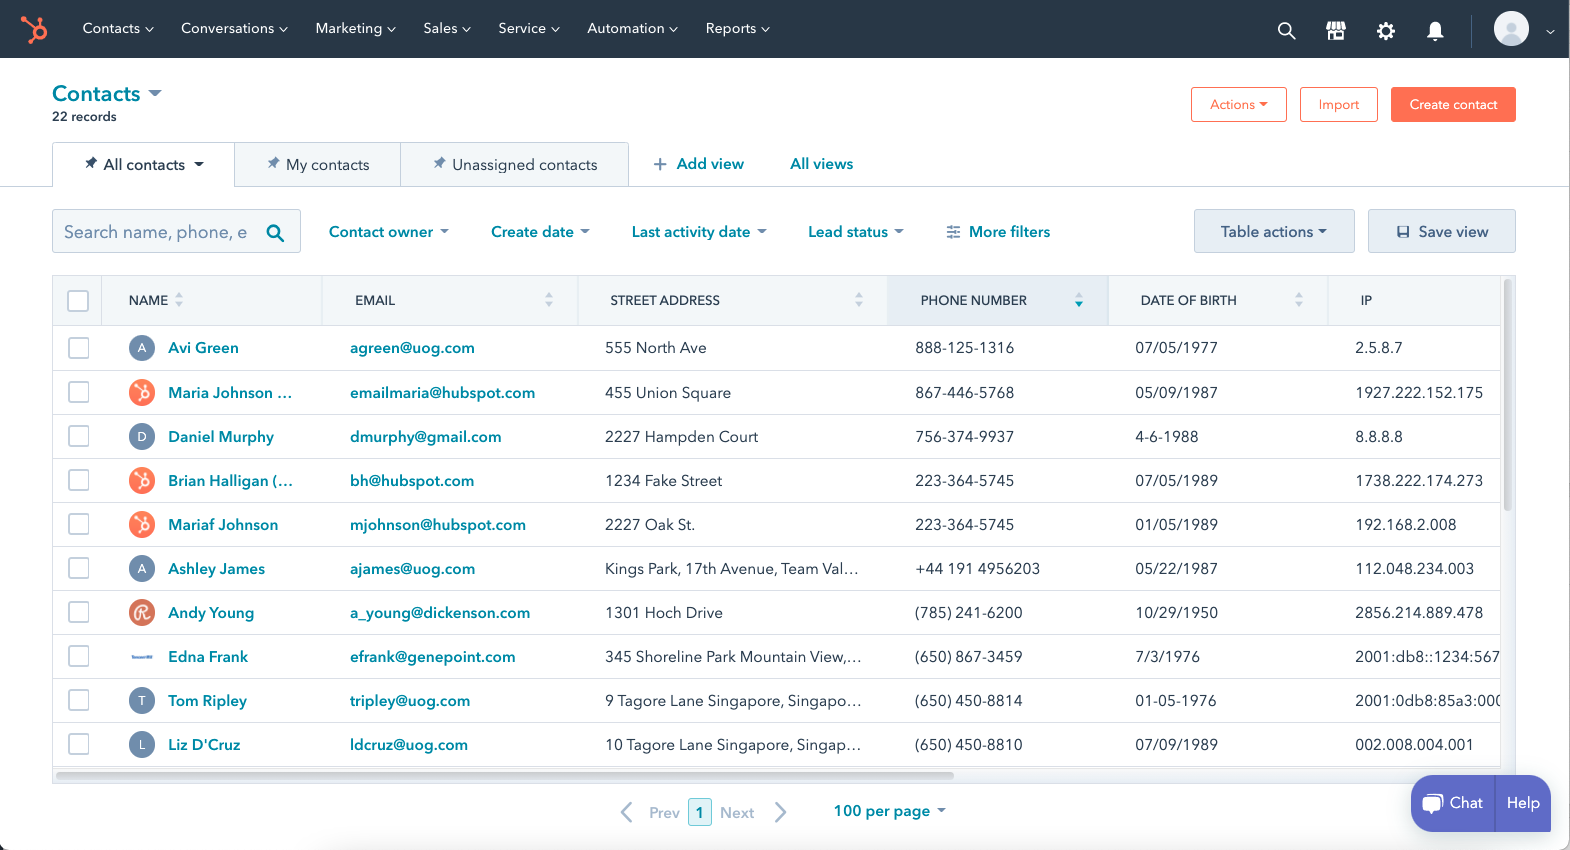 Contact Records View on HubSpot